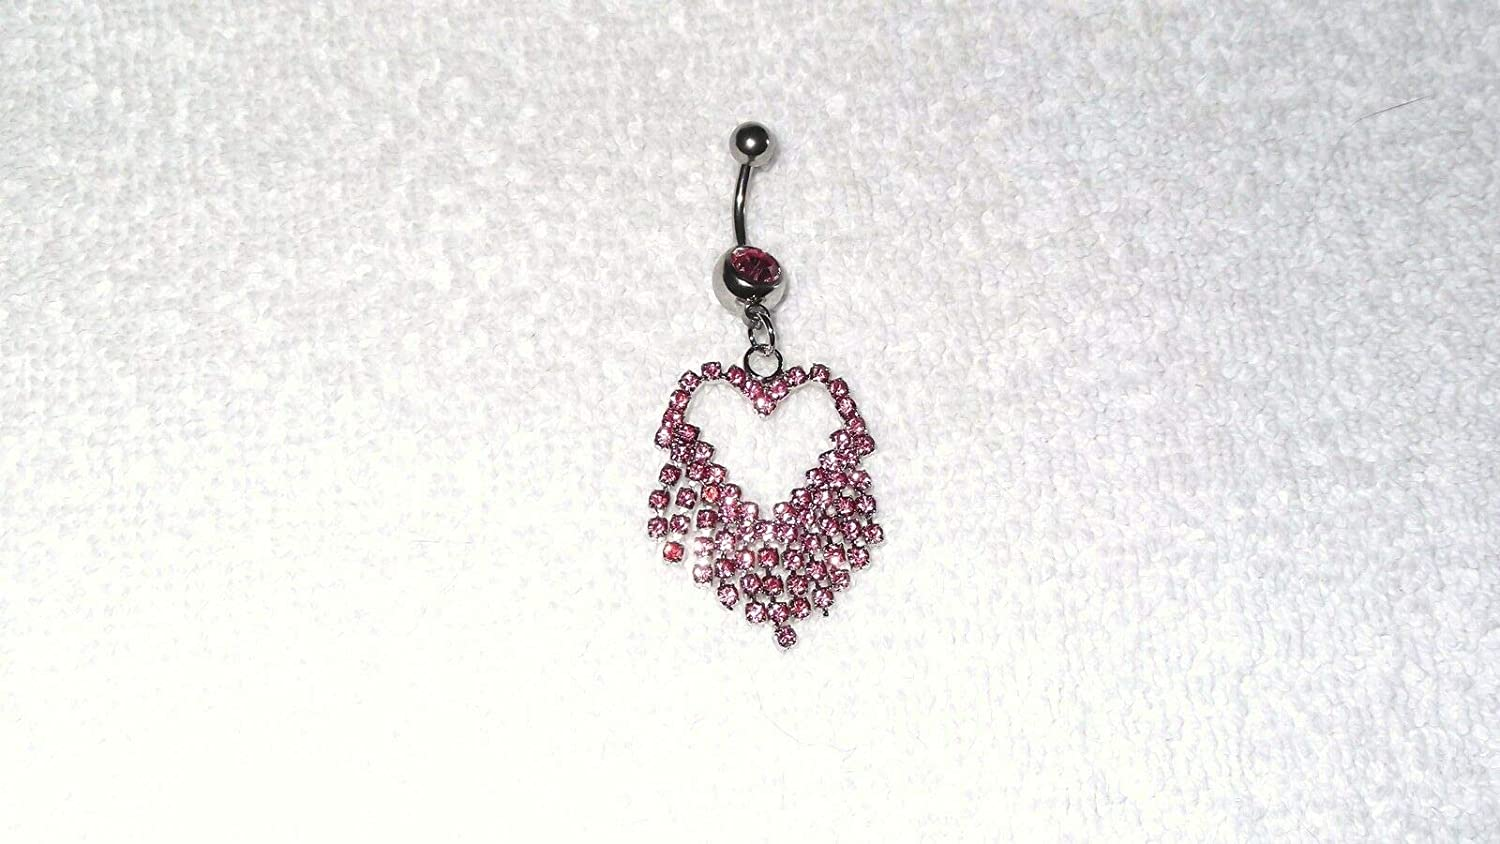 Pink Fringe Crystal Heart Belly Button Navel Ring Body Jewelry Piercing 14g #IS-736